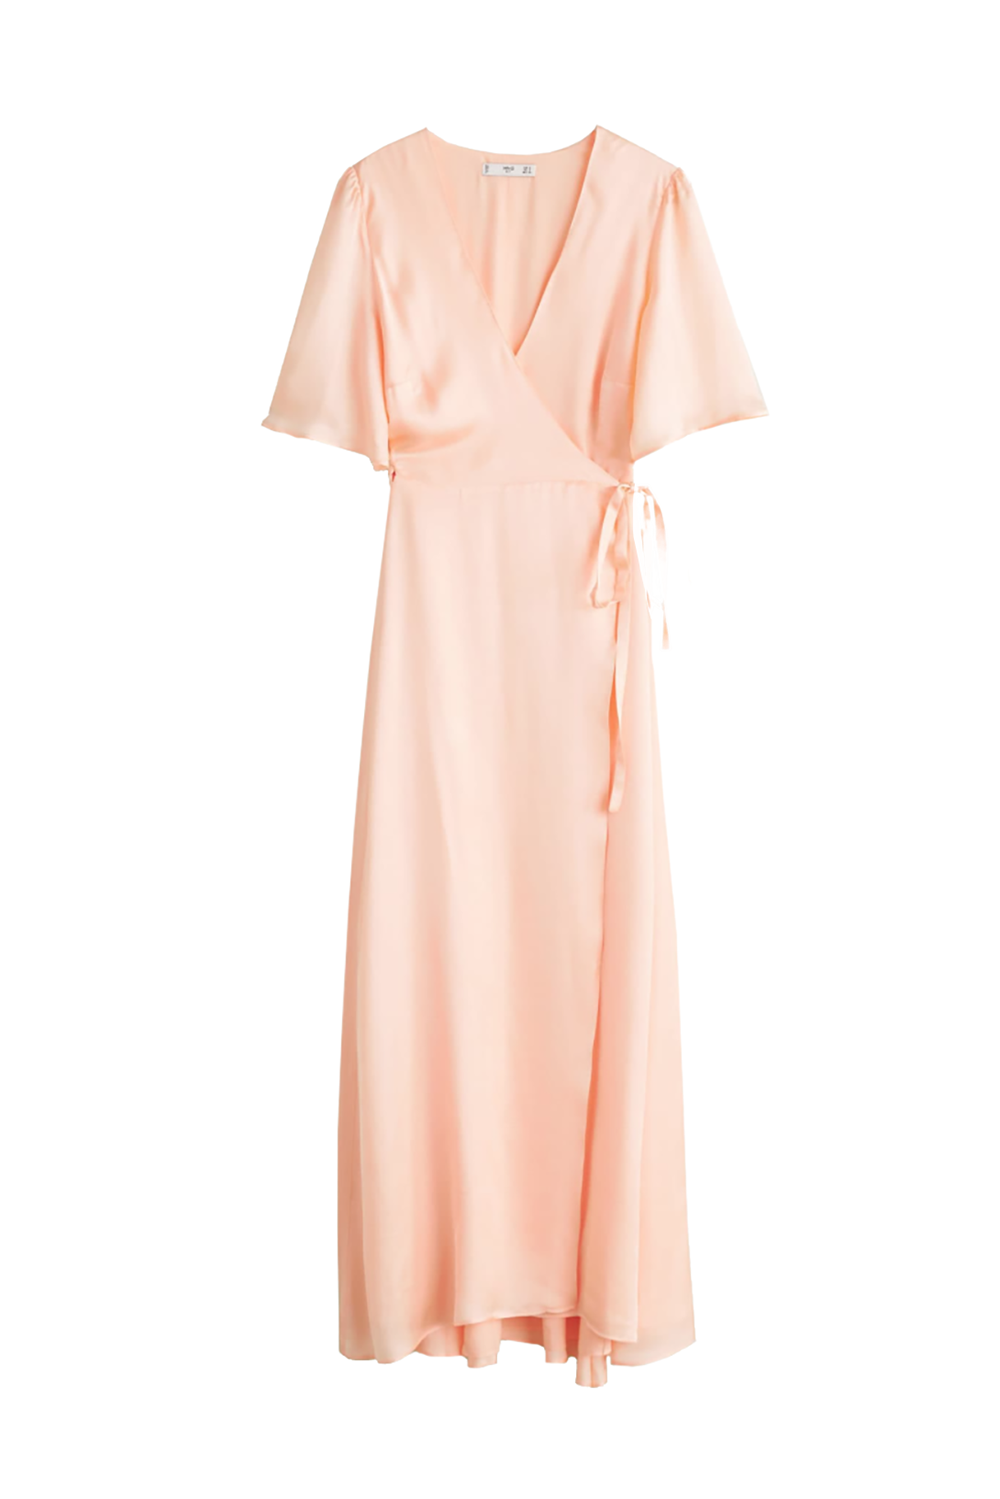 Best for Daytime Pastel Wrap Dress Mango $149.99 SHOP IT This satin wrap dress is like a cat—it has nine lives. It can be resurrected for any occasion, from weddings and bridal showers to your company's summer party.